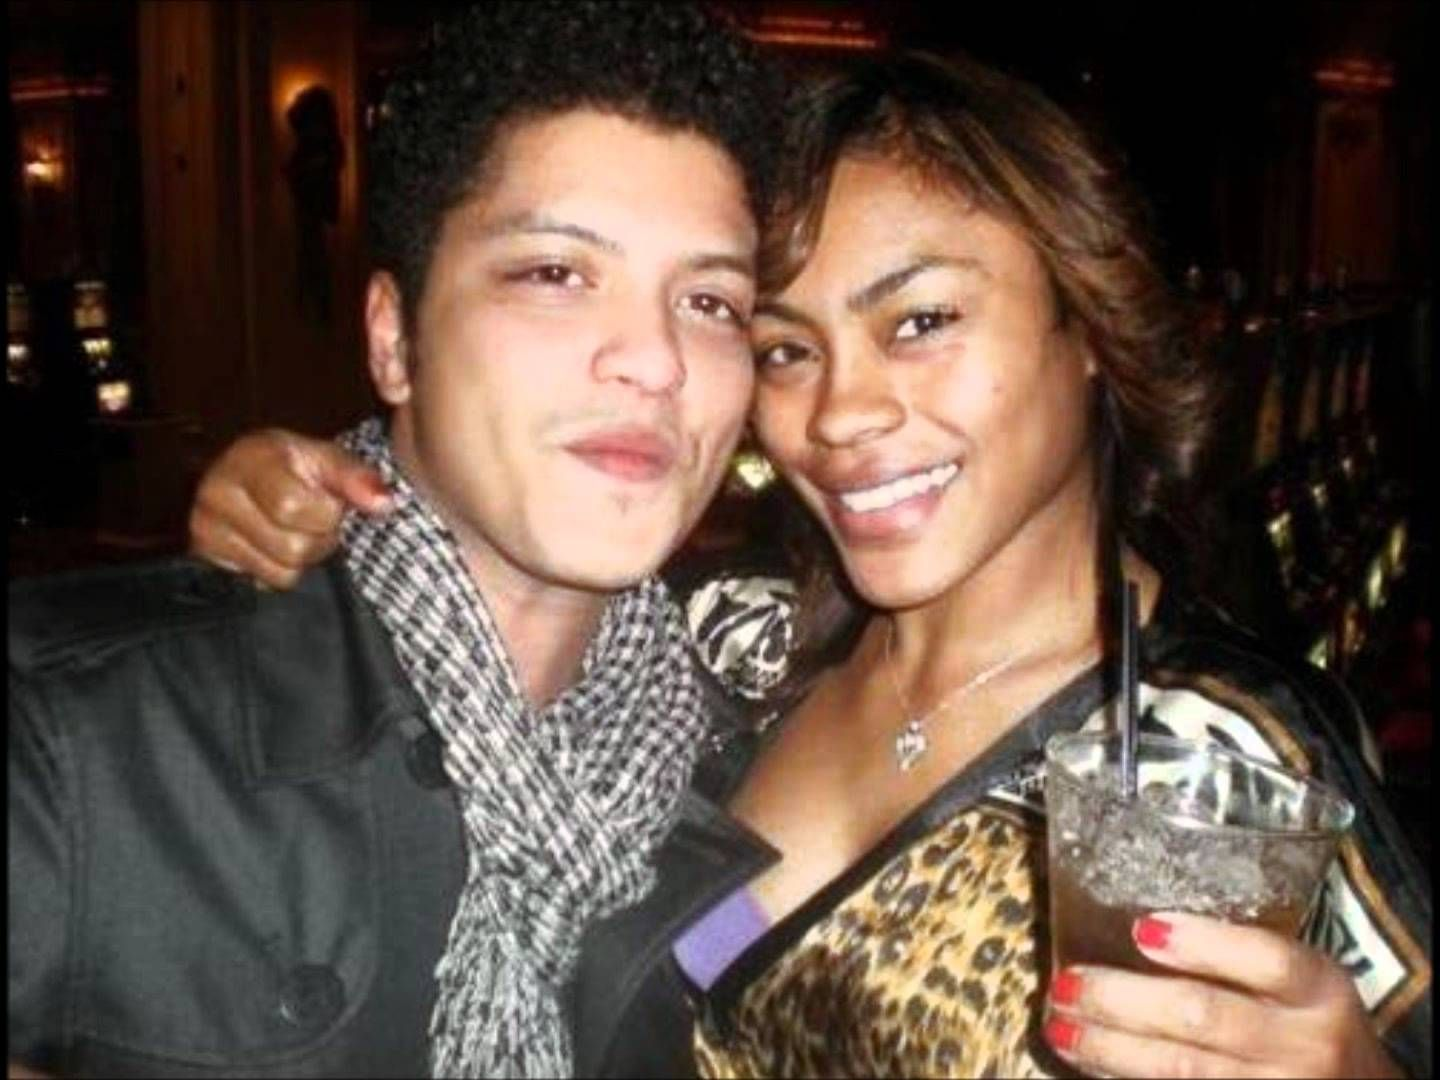 View bigger bruno mars ethnicity for android screenshot - Bruno And His Girlfriend